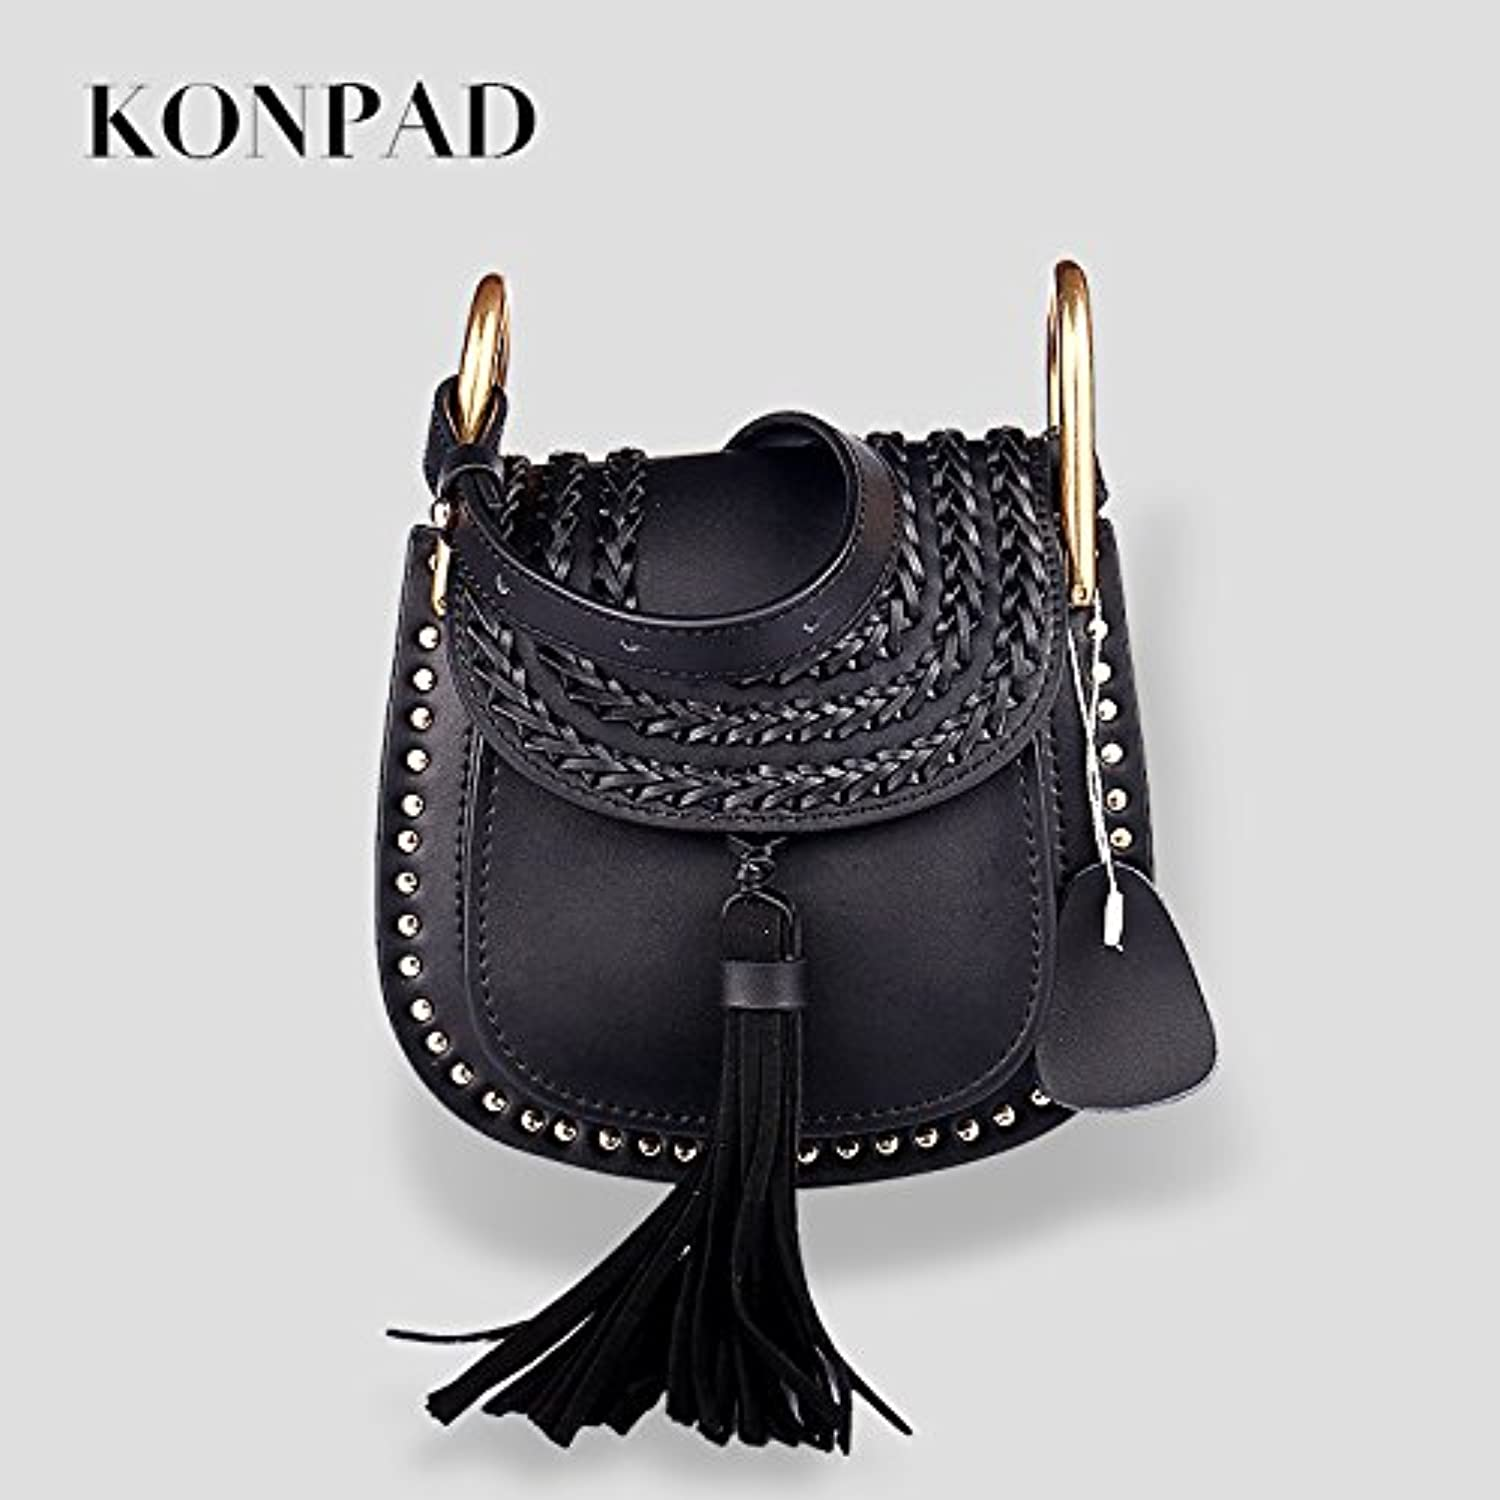 Konpad Women's Tassel Genuie Cowhide Leather Backpack Fashion Trend Schoolbag Shoulder Bag College Teenage Girls